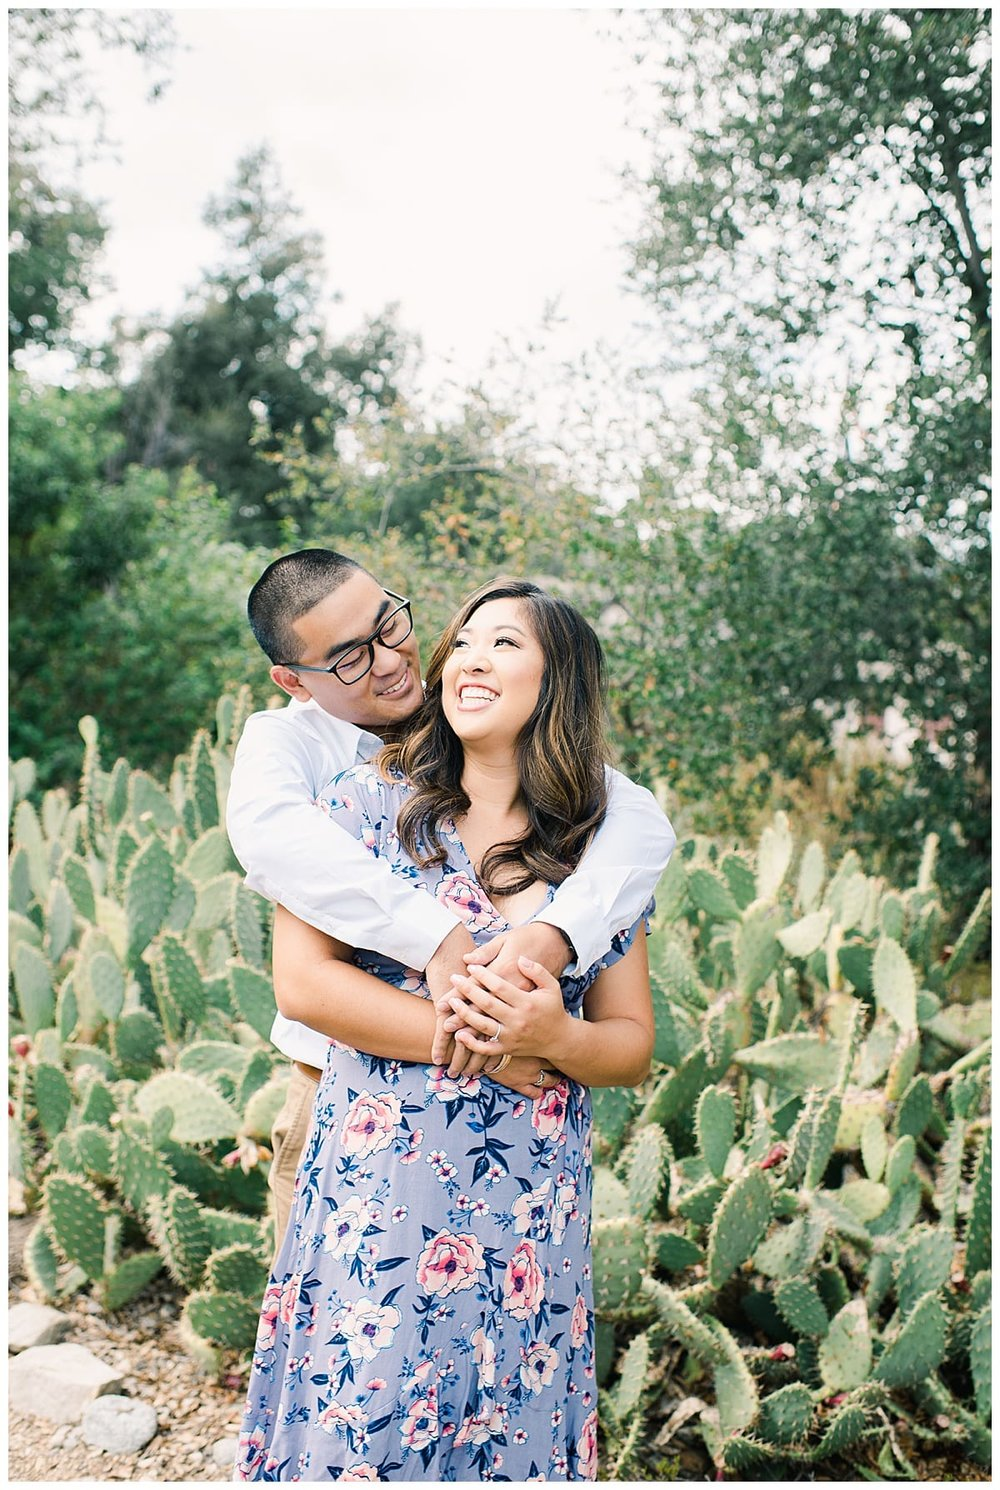 Eaton-Canyon-Altadena-Engagement-Shoot-Carissa-Woo-Photography_0005.jpg